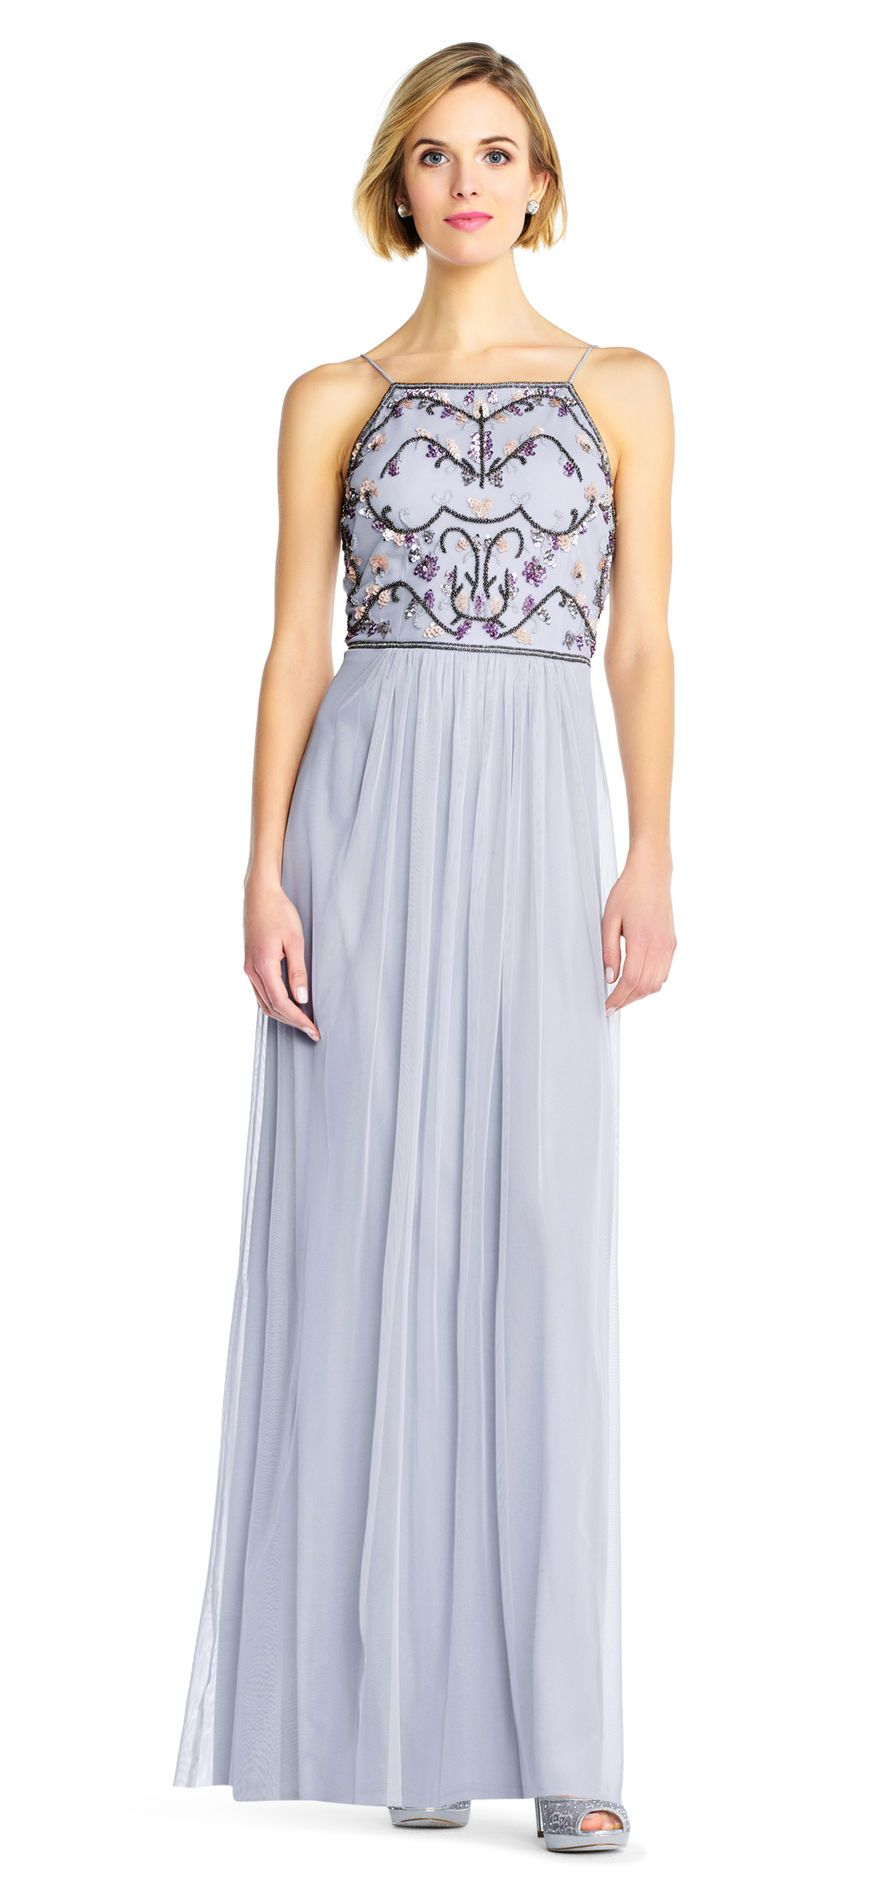 Tulle Halter Gown with Multicolor Floral Beading   Dress   Pinterest ...